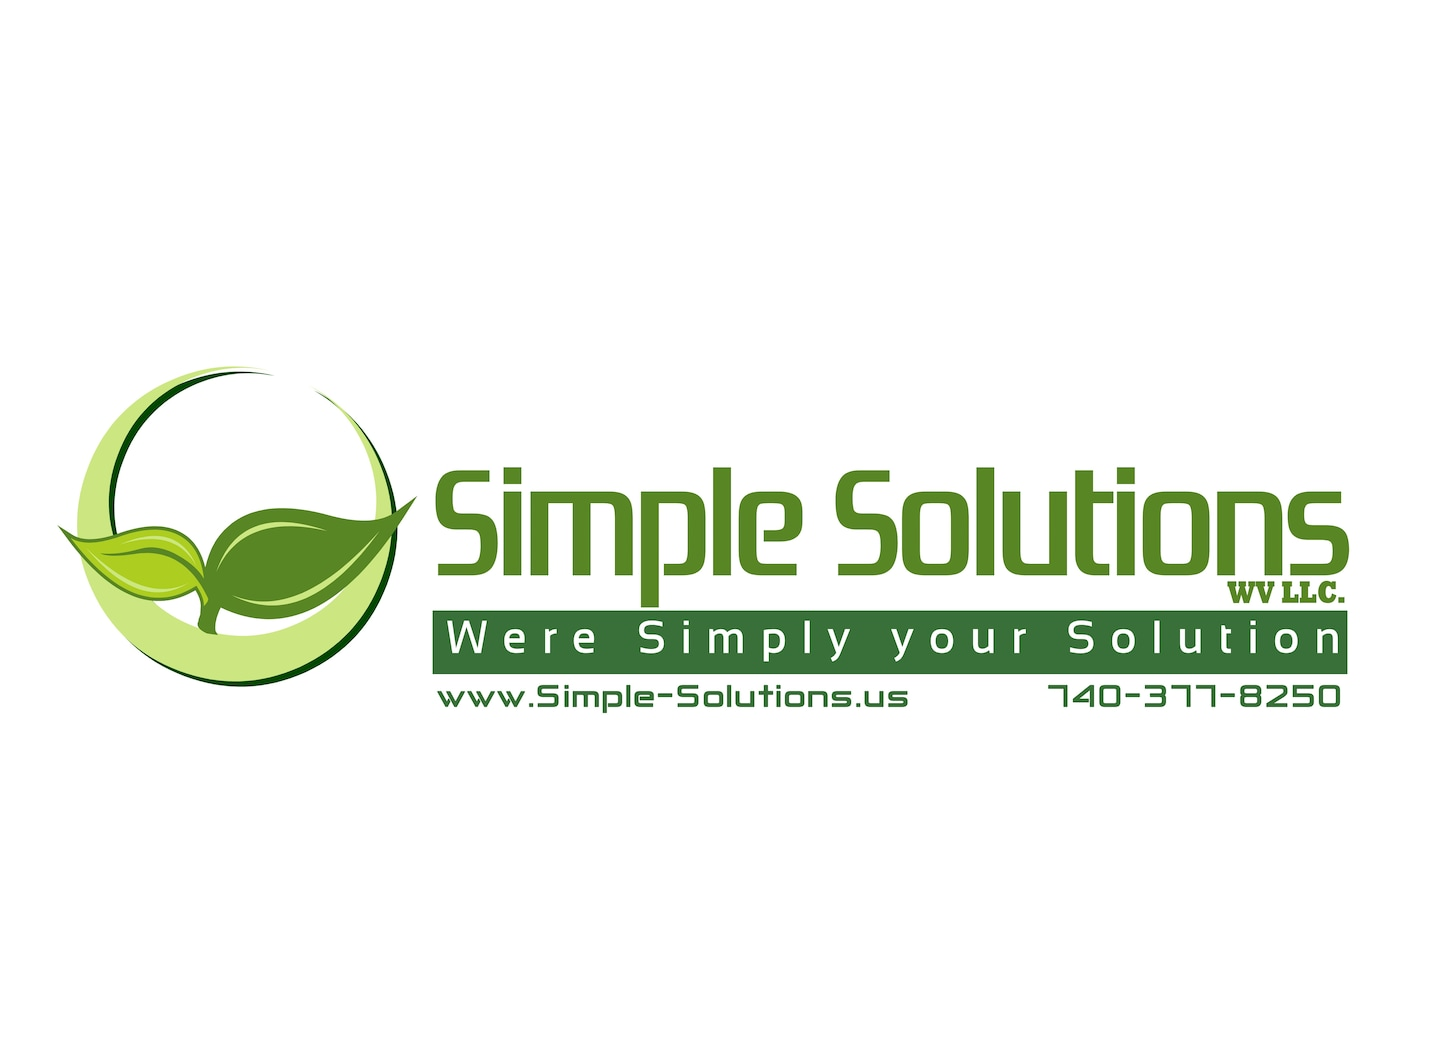 Simple Solutions WV LLC